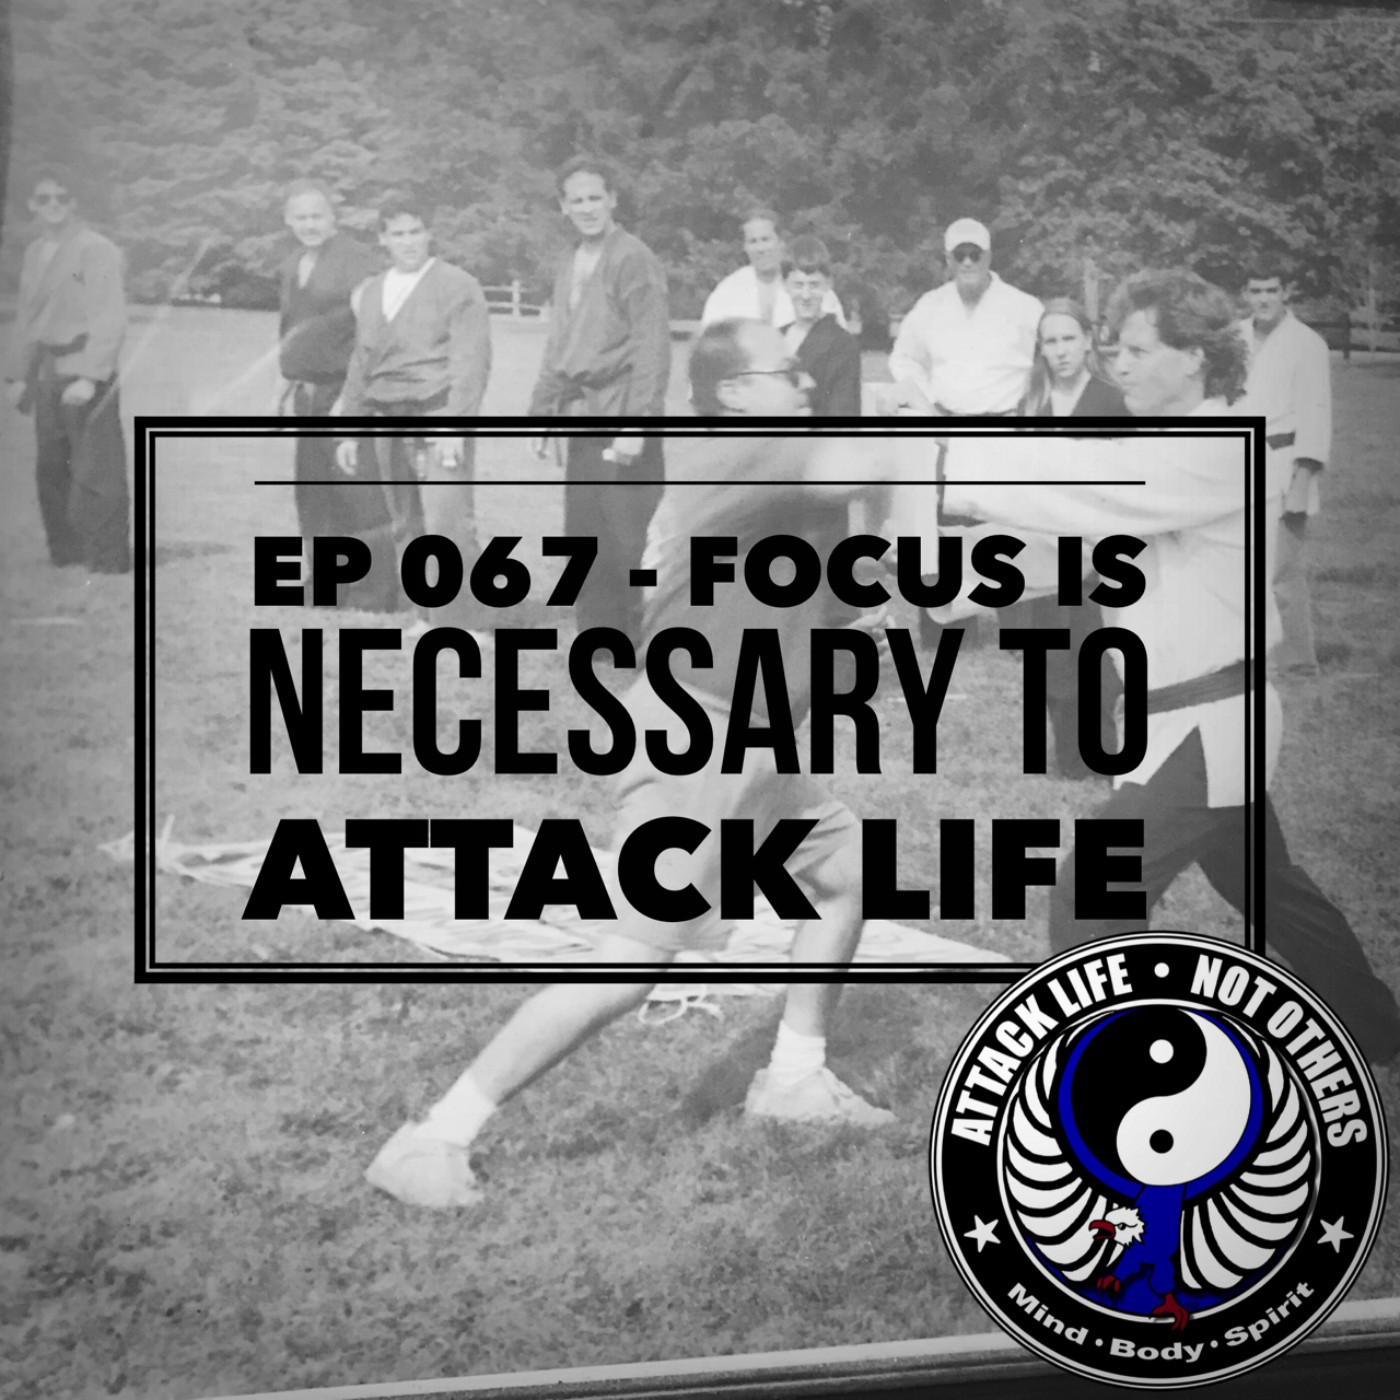 Artwork for Ep 067 - Focus is Necessary to Attack Life